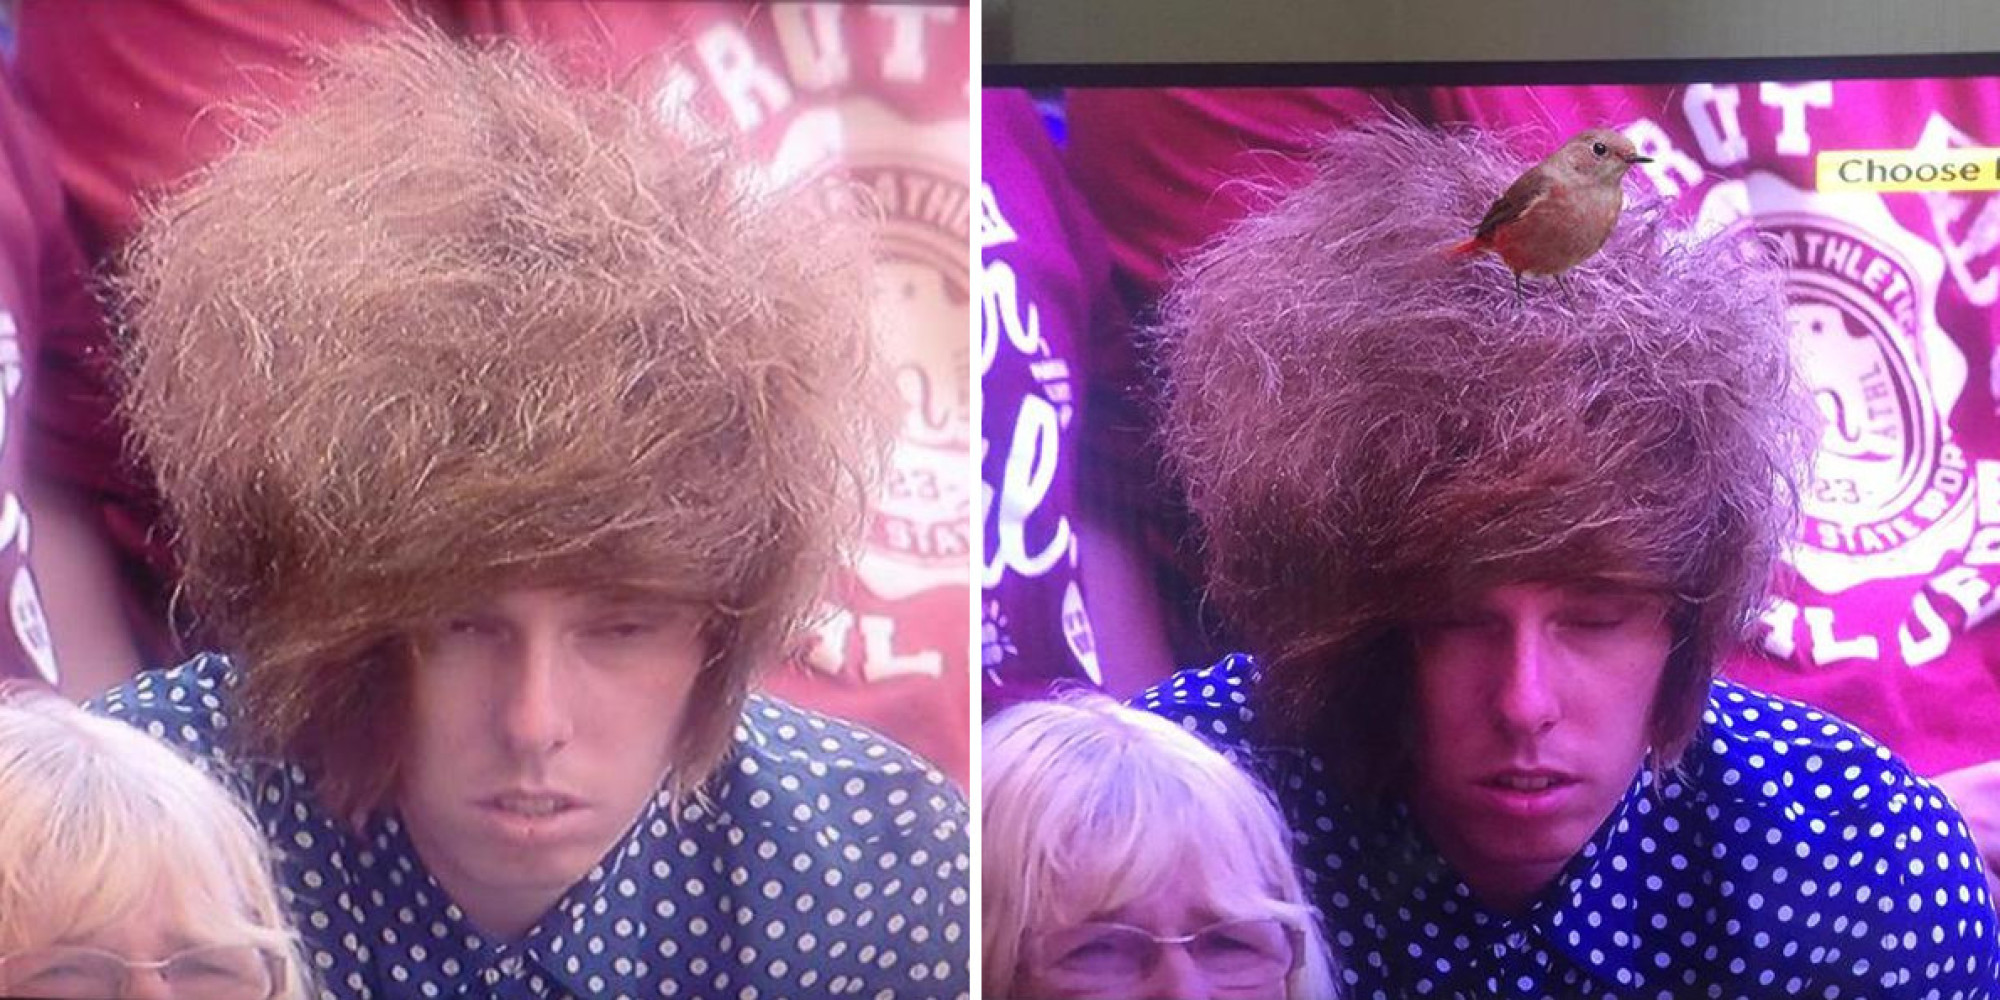 Wimbledon Watcher With Epic Hair Do Becomes Centre Of